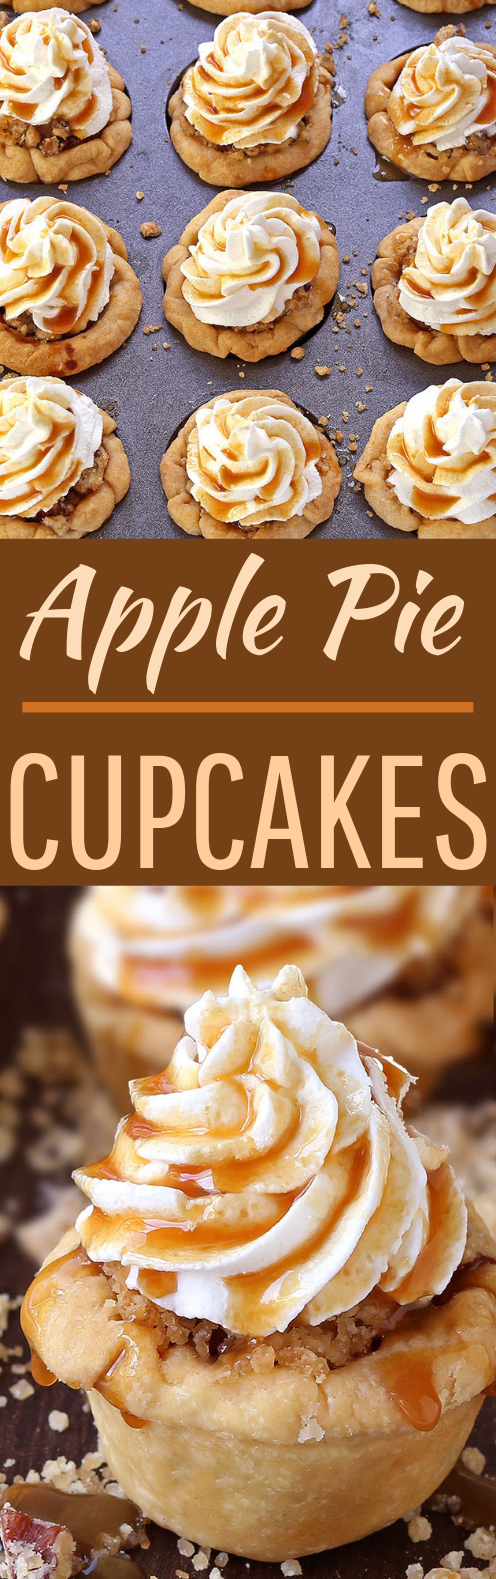 Apple Pie Cupcakes #desserts #cupcakes